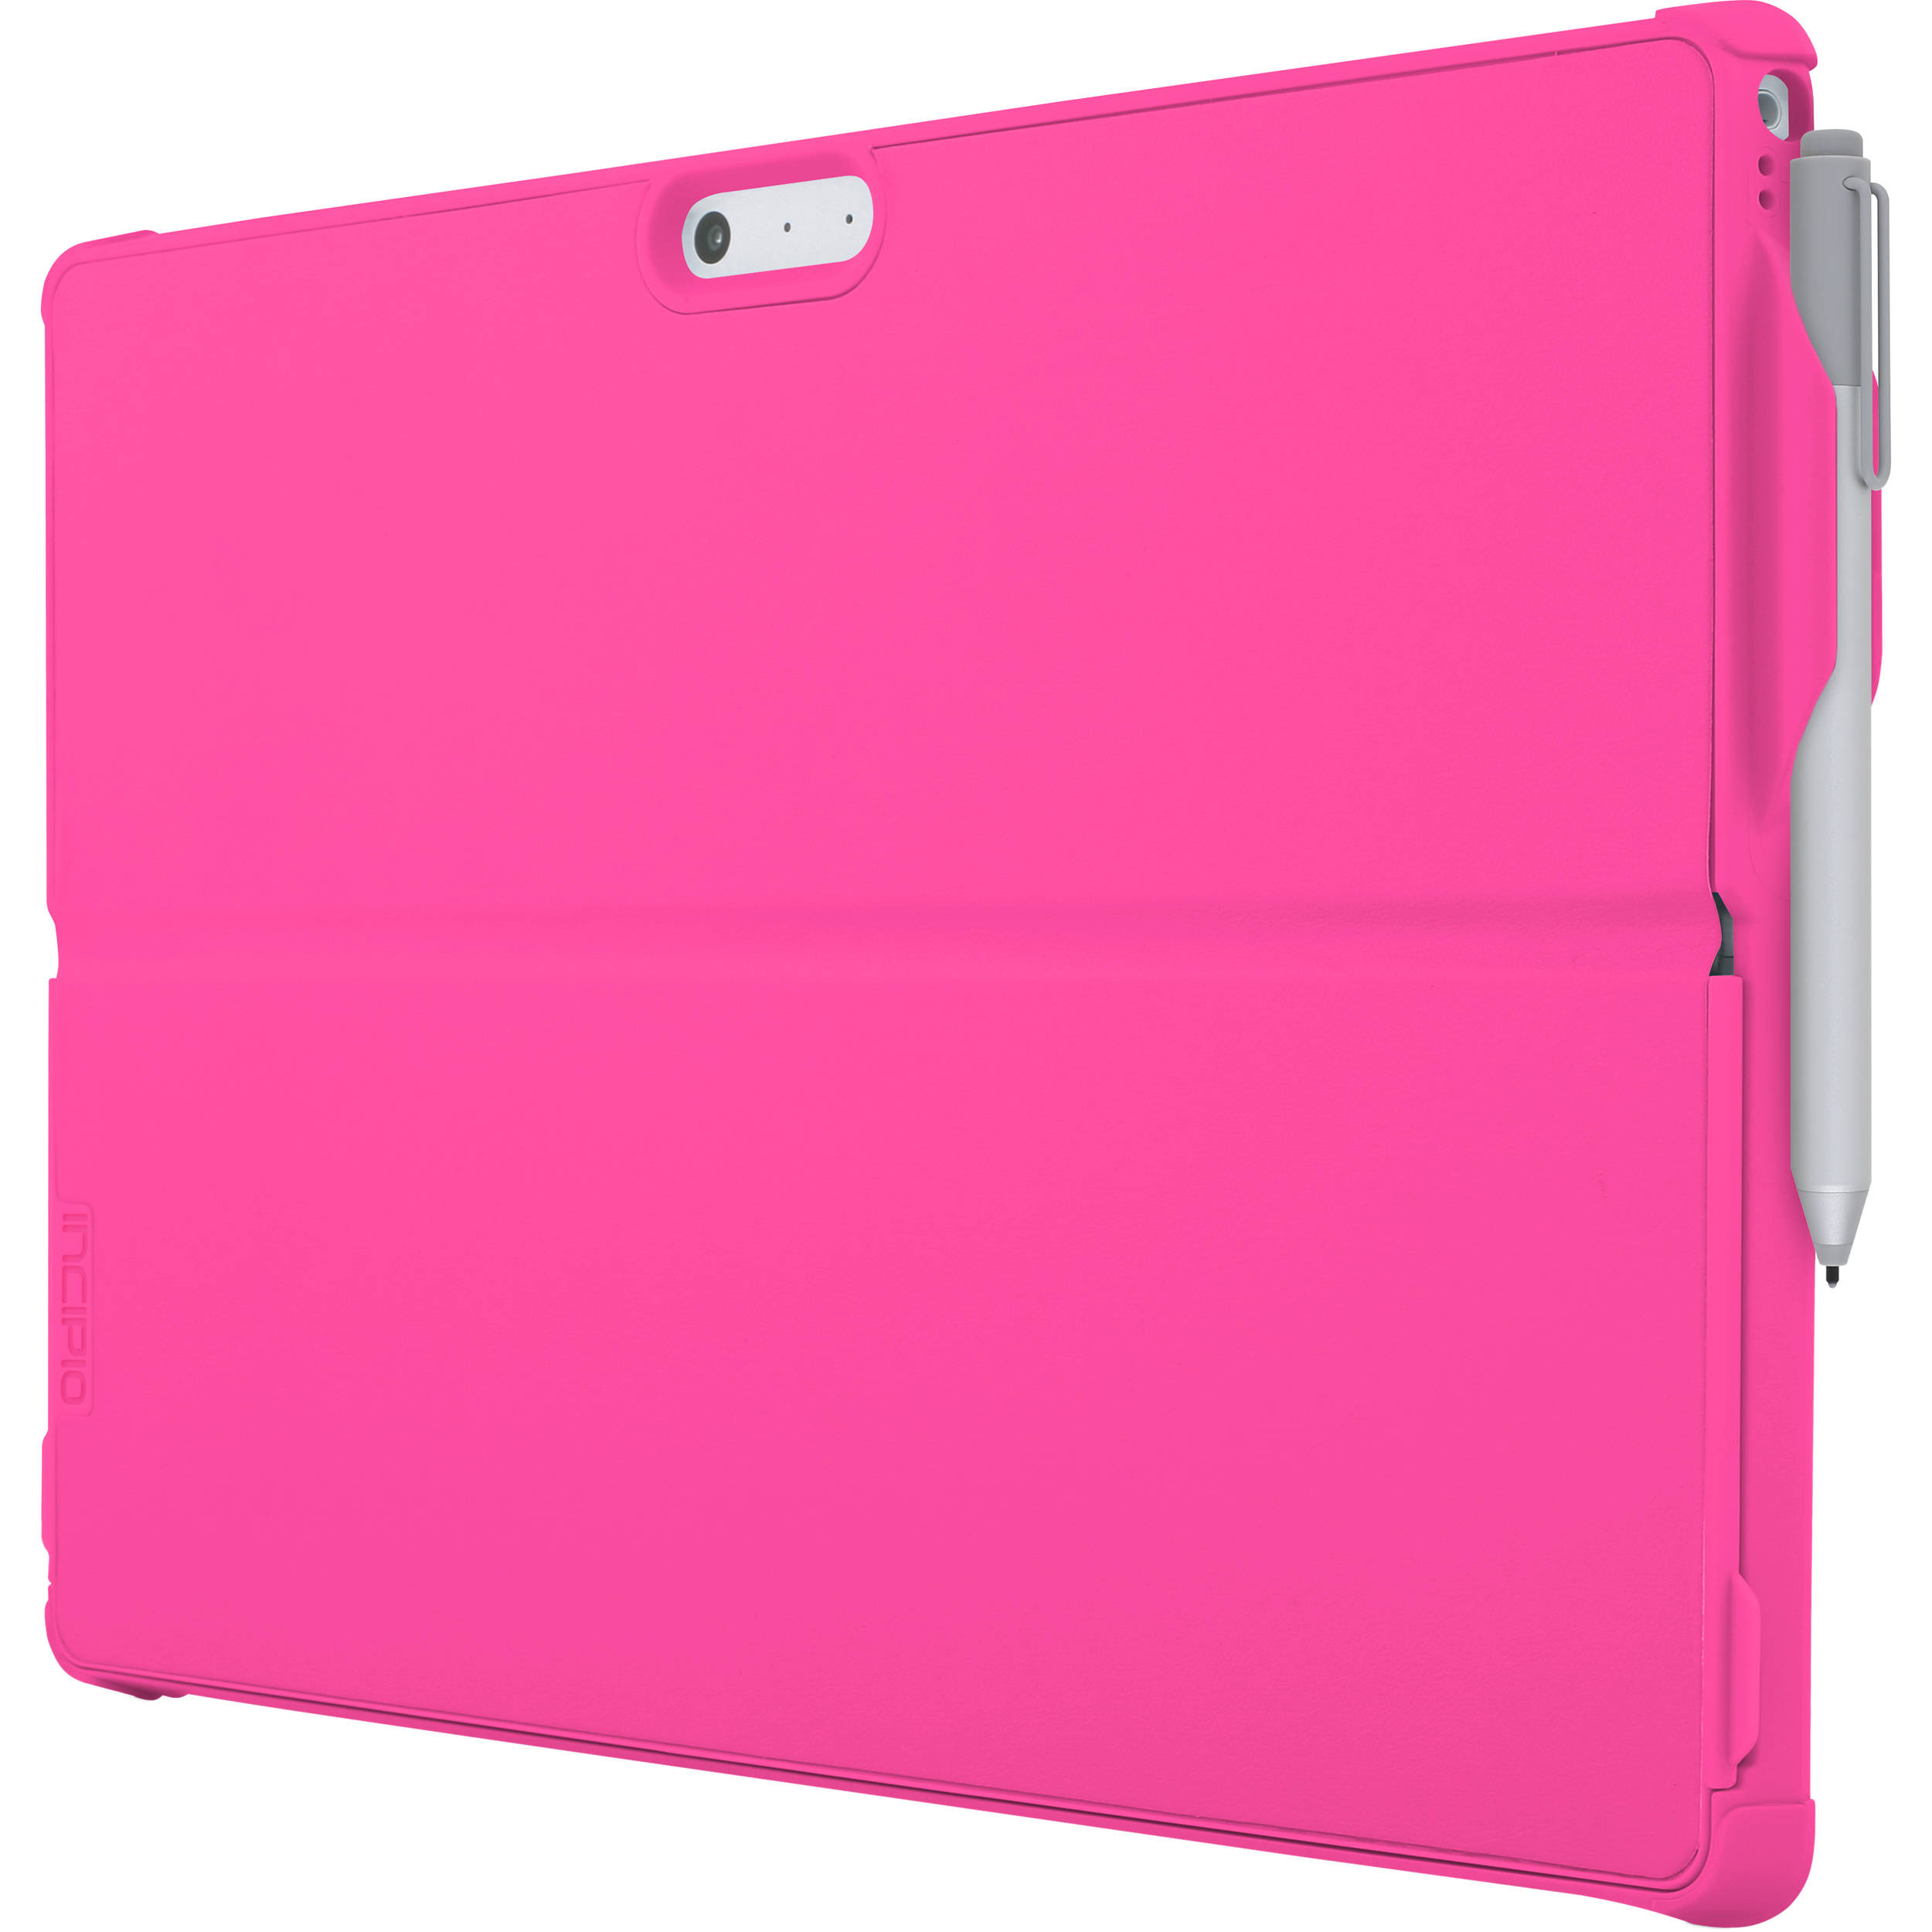 sports shoes 0868d 2ef2f Incipio Feather Hybrid Case with Shock-Absorbing Frame for Surface Pro/Pro  4 (Pink)